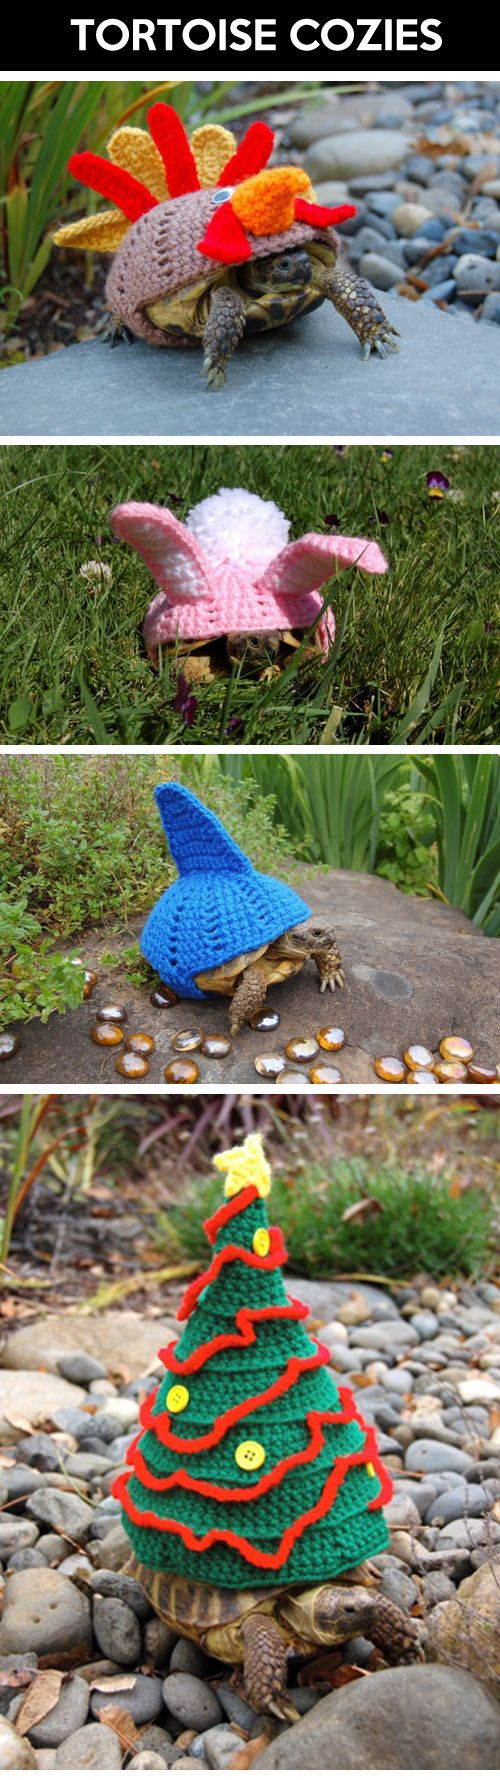 I want to do this for the turtles at school. Haha!!!!! Maybe a project for the knitting club...?